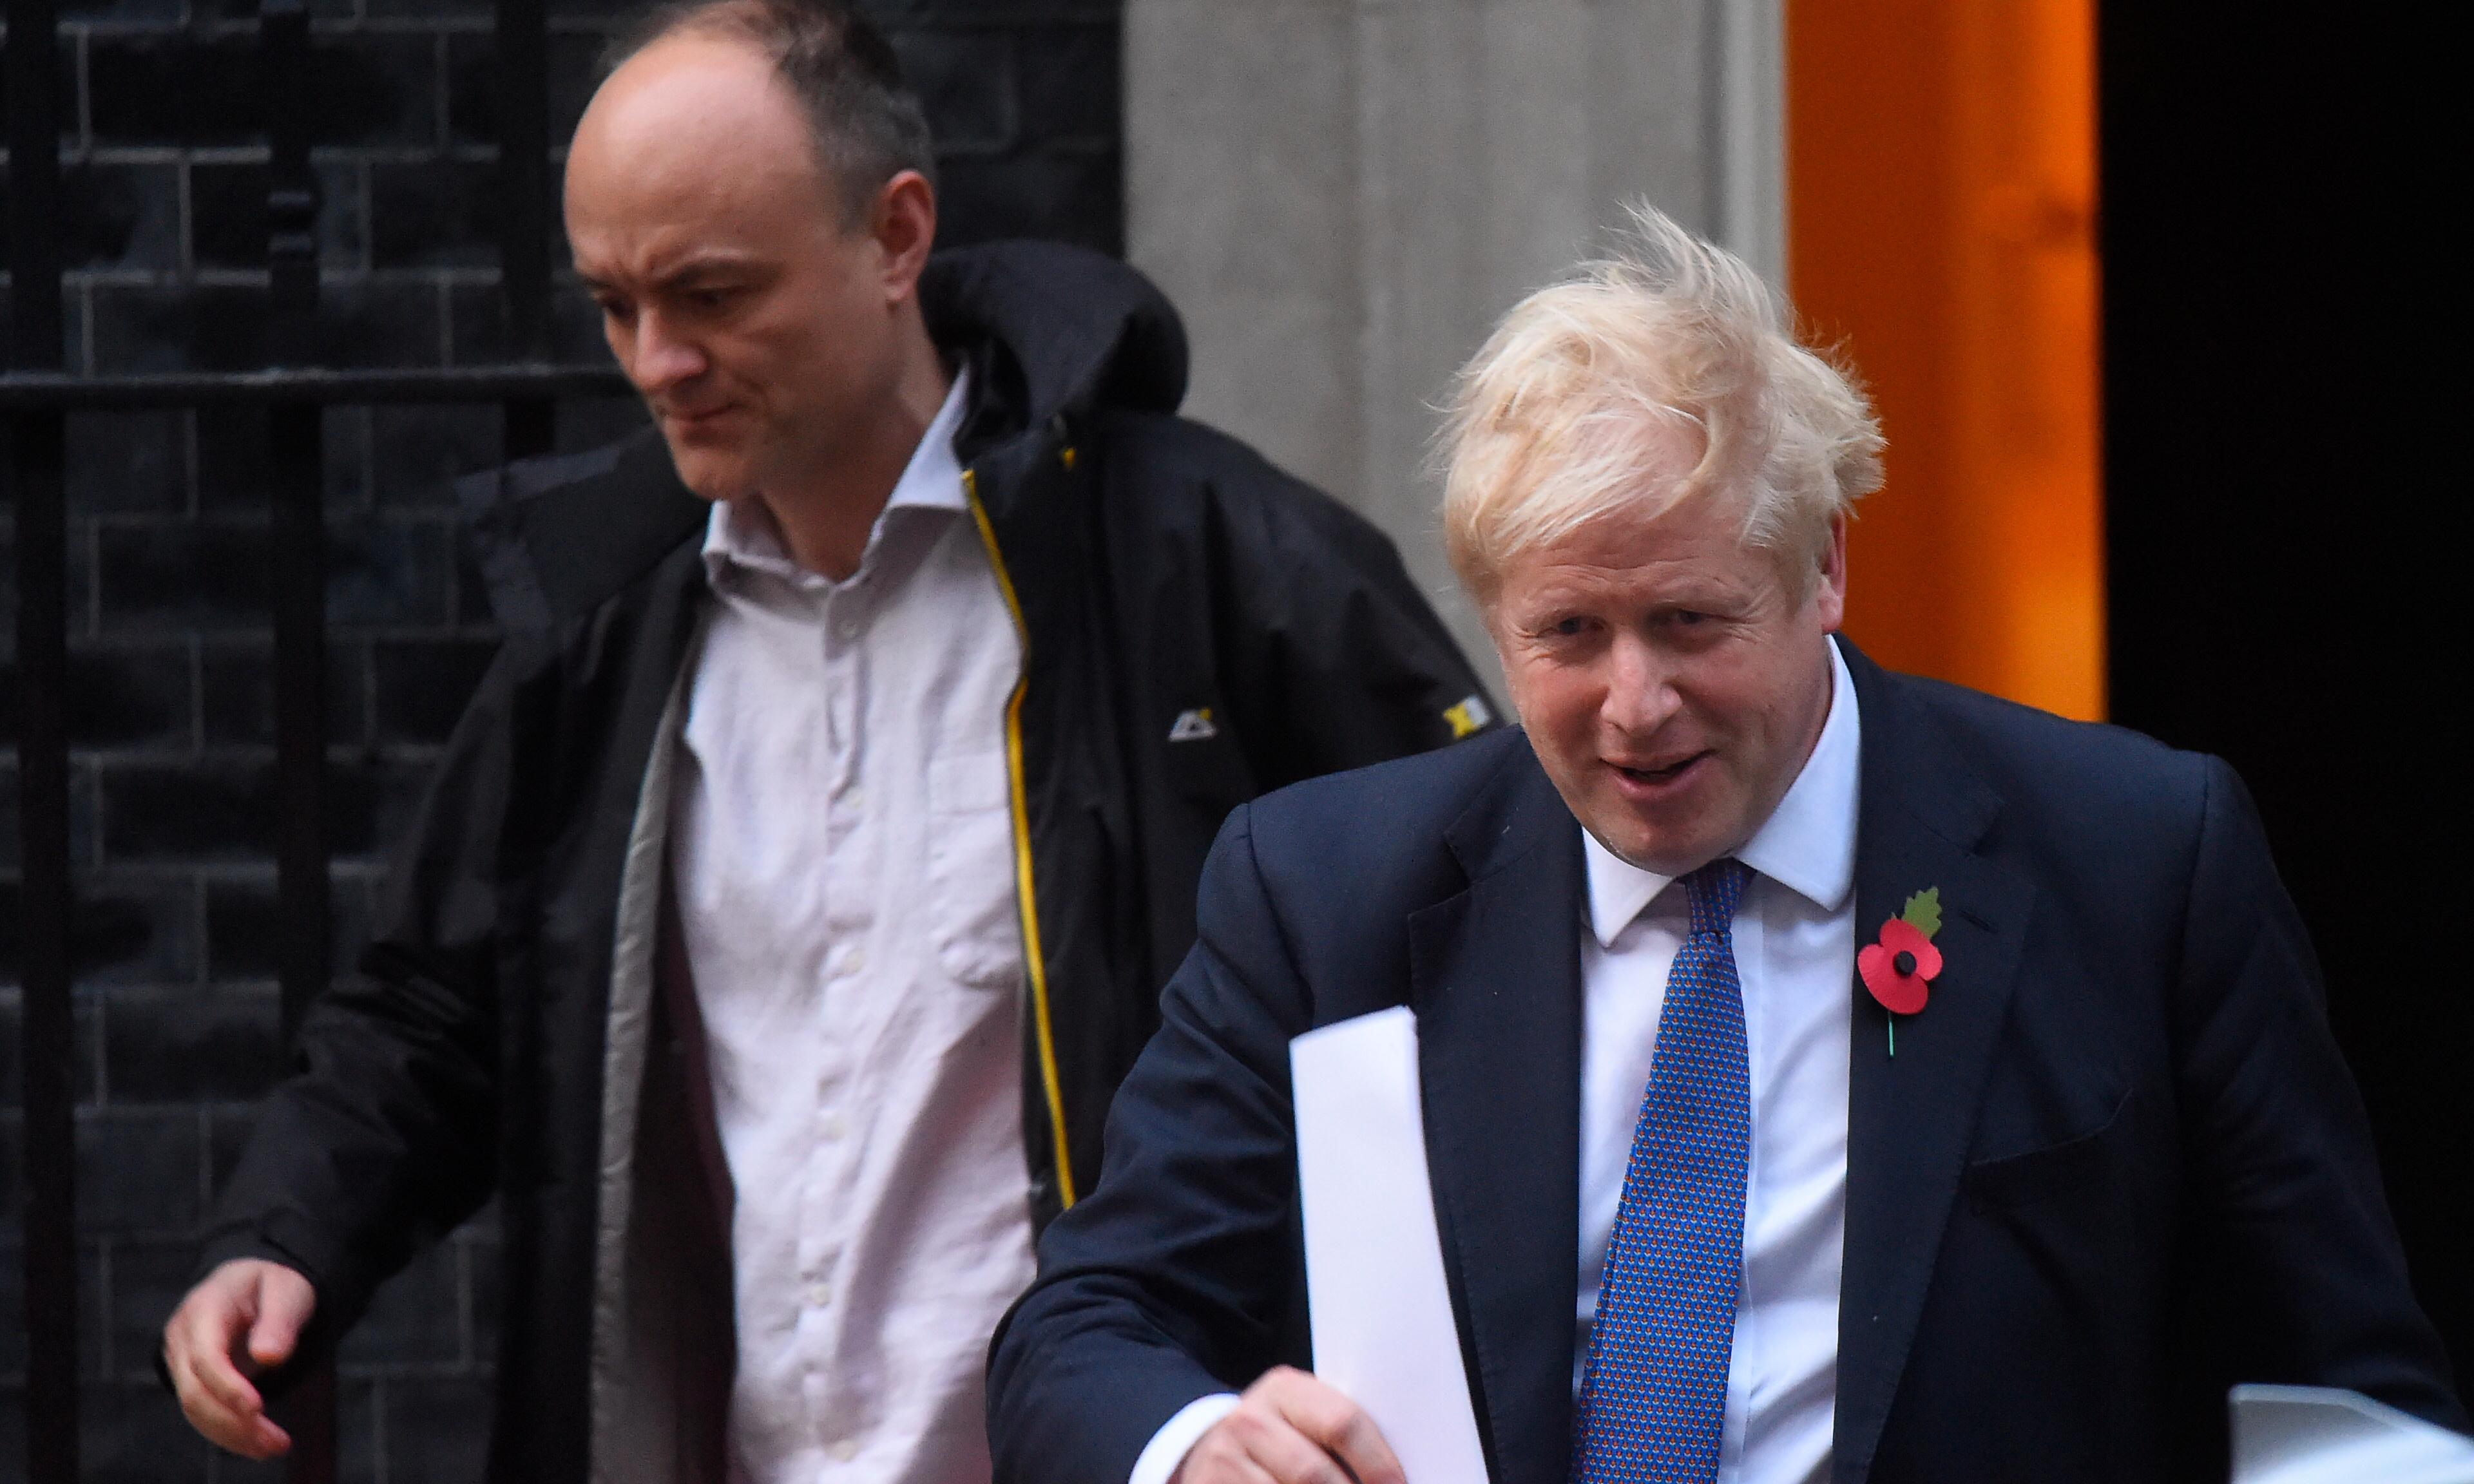 For Johnson's Tories, the collapse of public trust isn't a problem – it's an opportunity